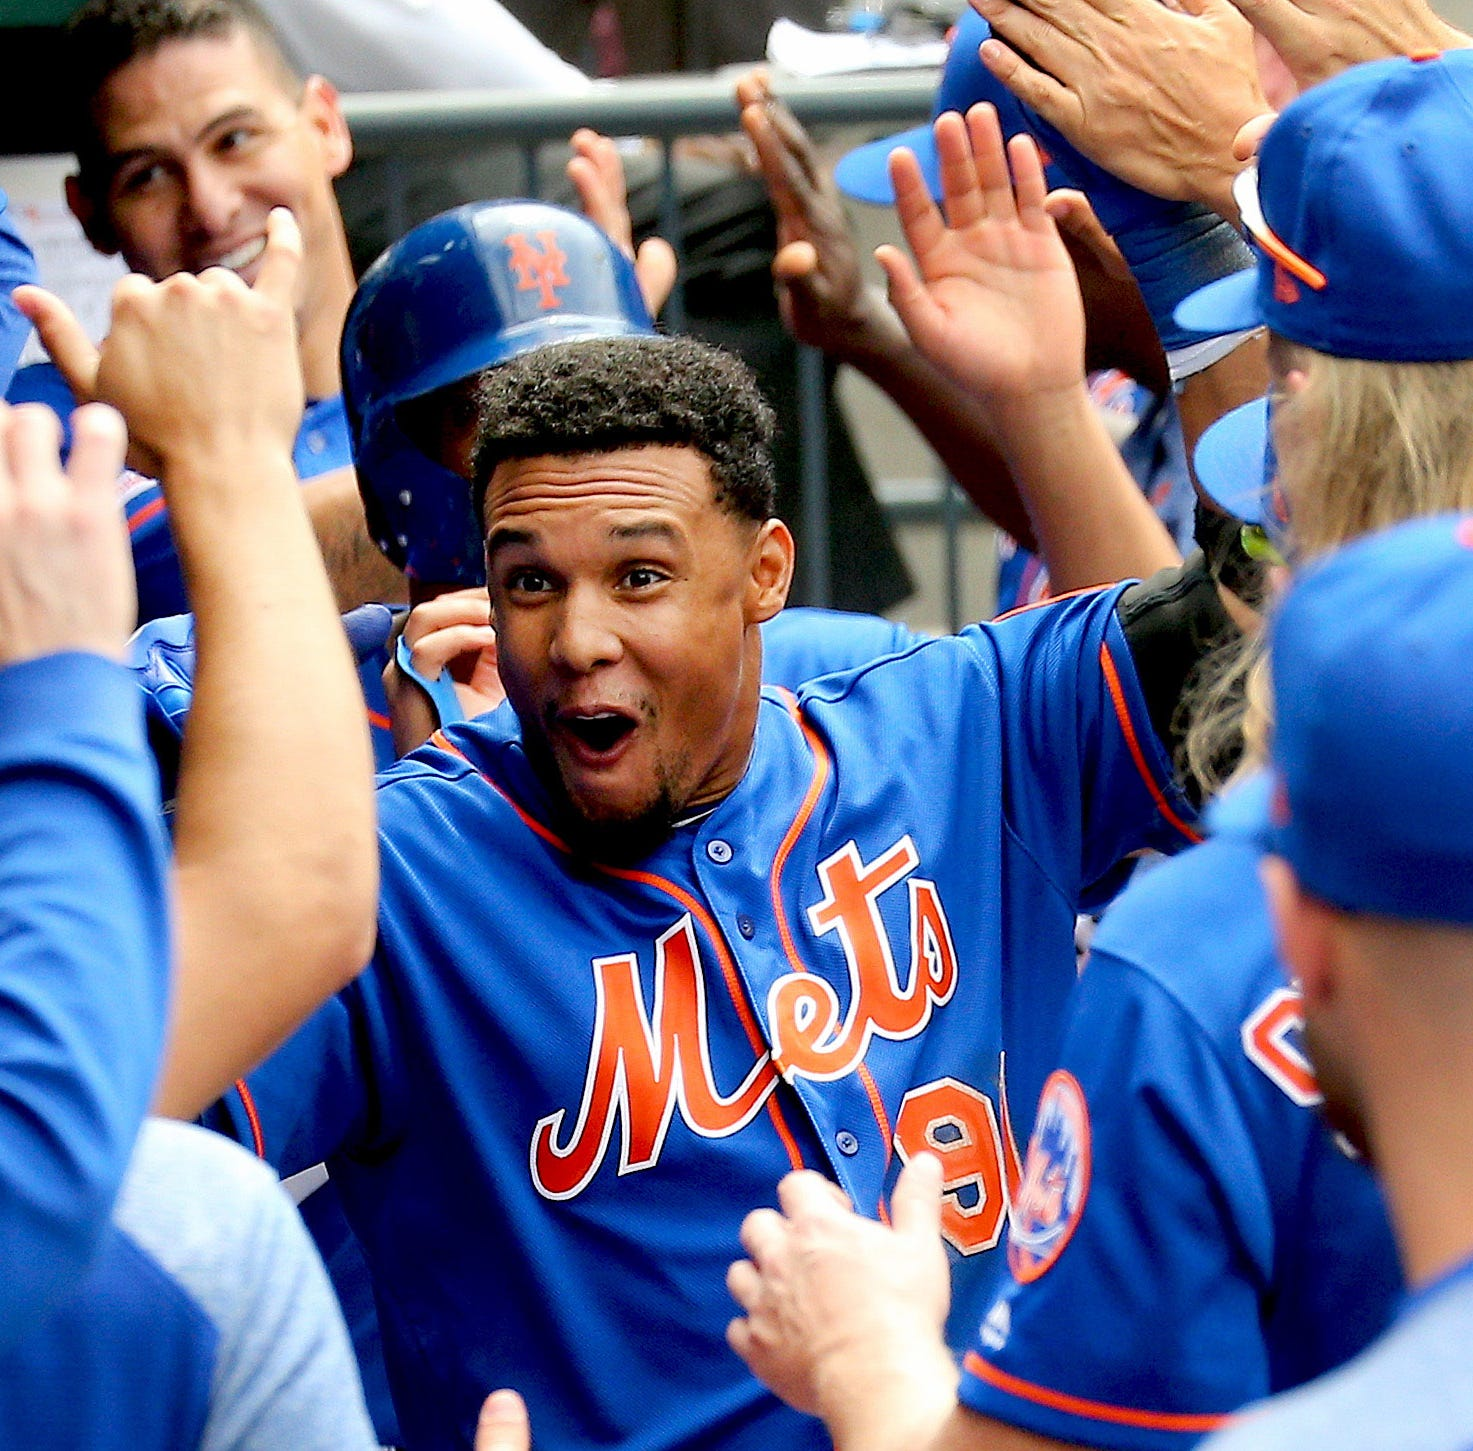 Mets complete sweep of Nationals thanks to Carlos Gomez's late-game heroics